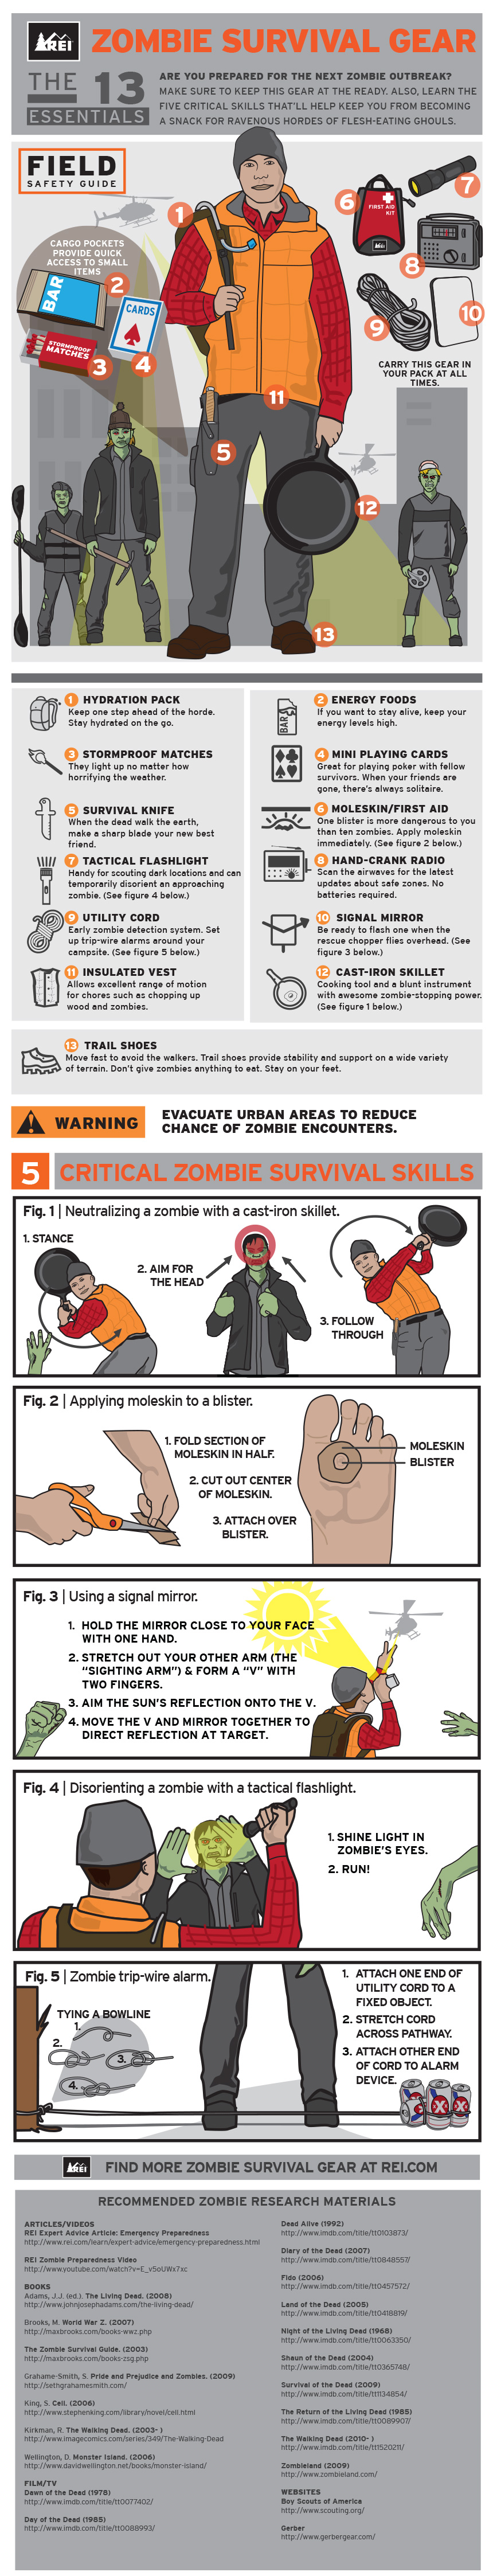 Zombie Survival Gear [INFOGRAPHIC]